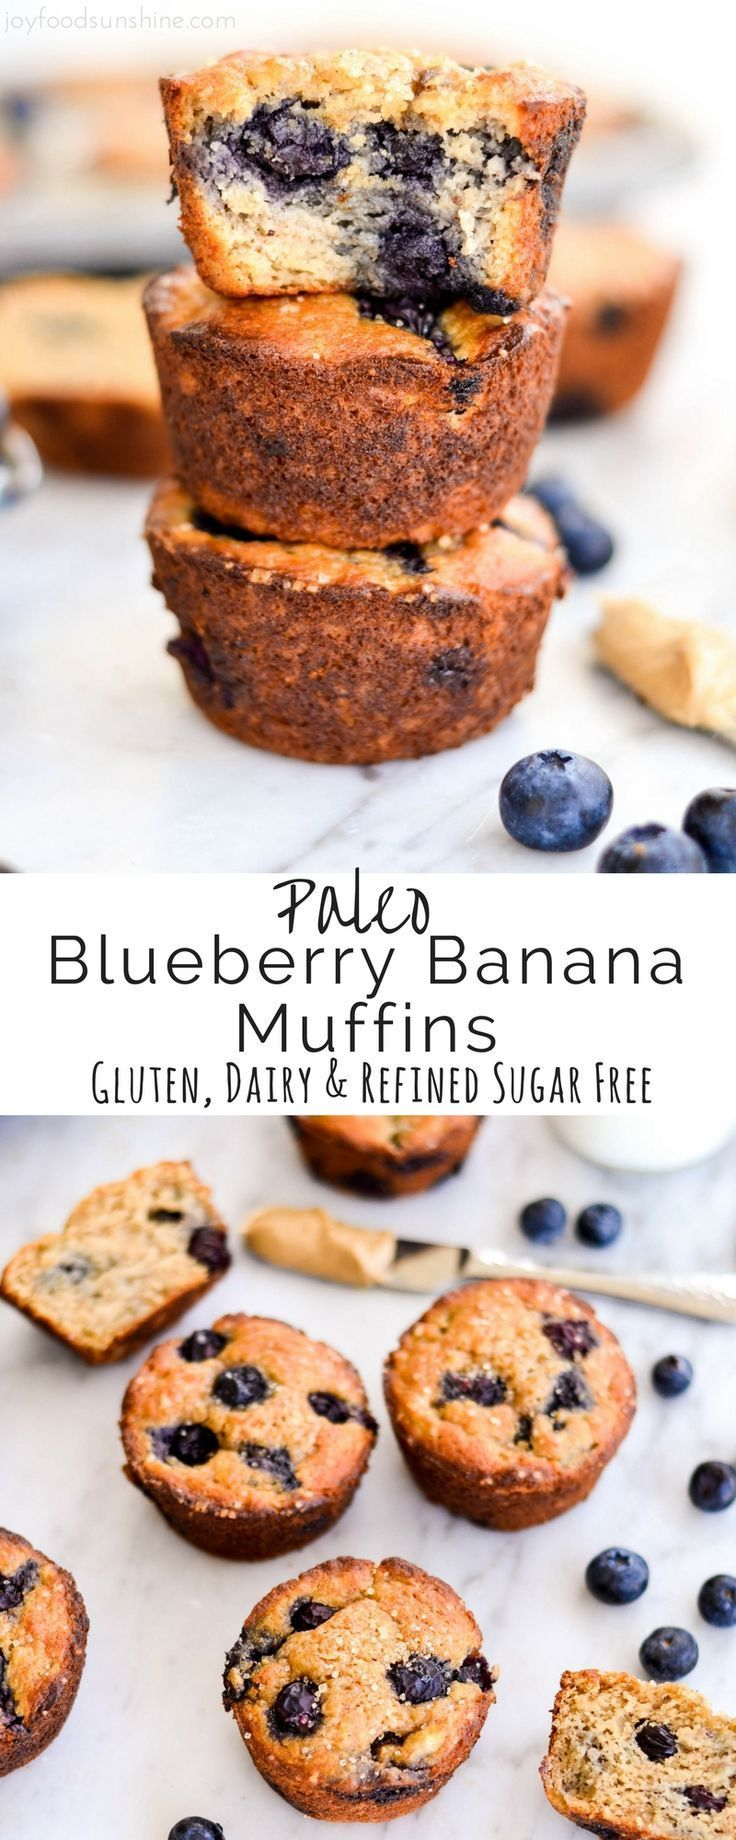 Paleo Blueberry Banana Muffins taste just like a bakery muffin but are healthy! Paleo, gluten-free, dairy-free